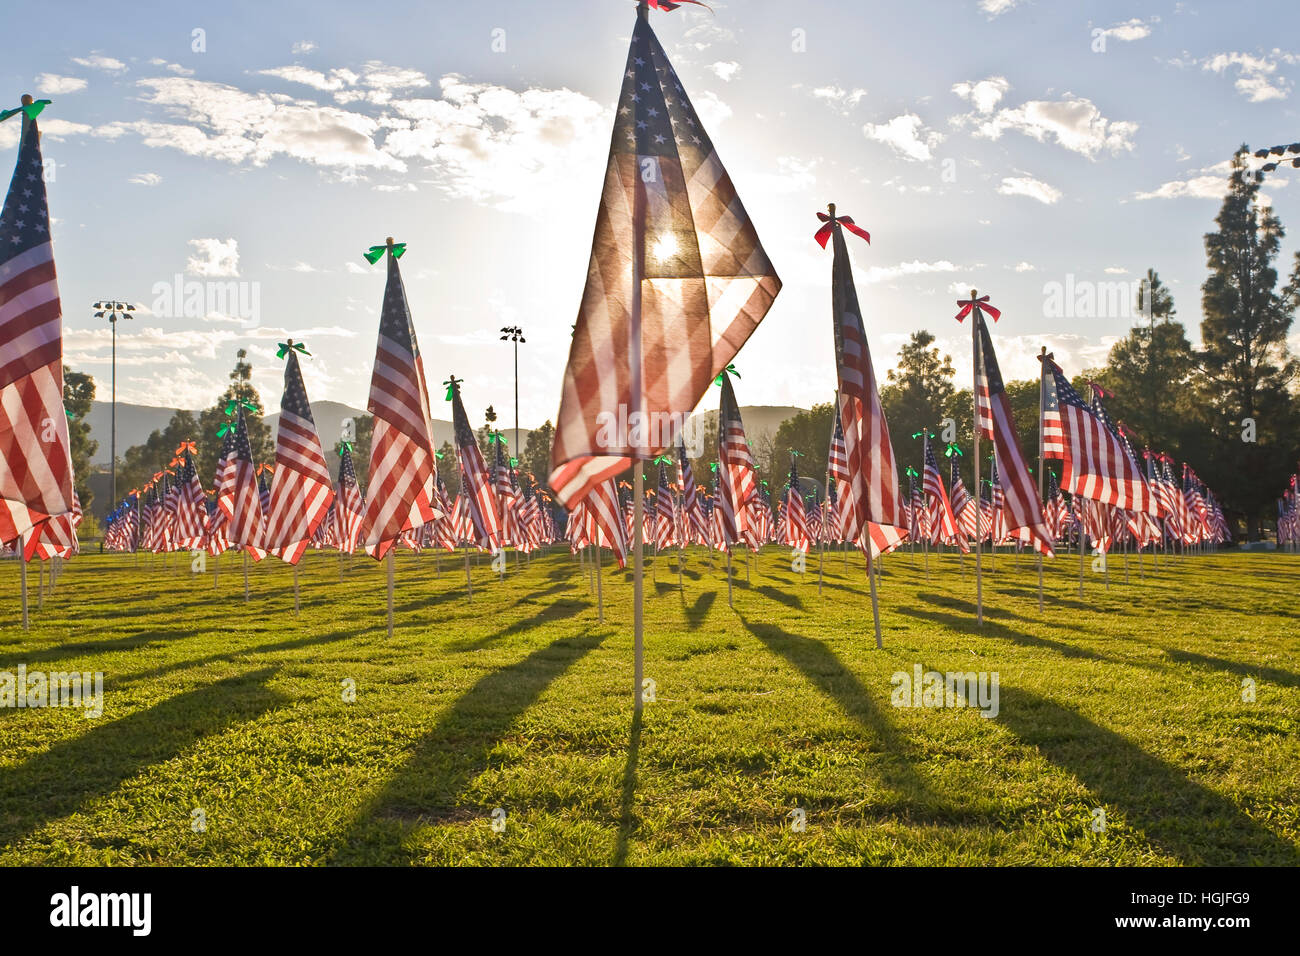 1,100 3-foot-by-5-foot American flags  on 8-foot poles. - Stock Image